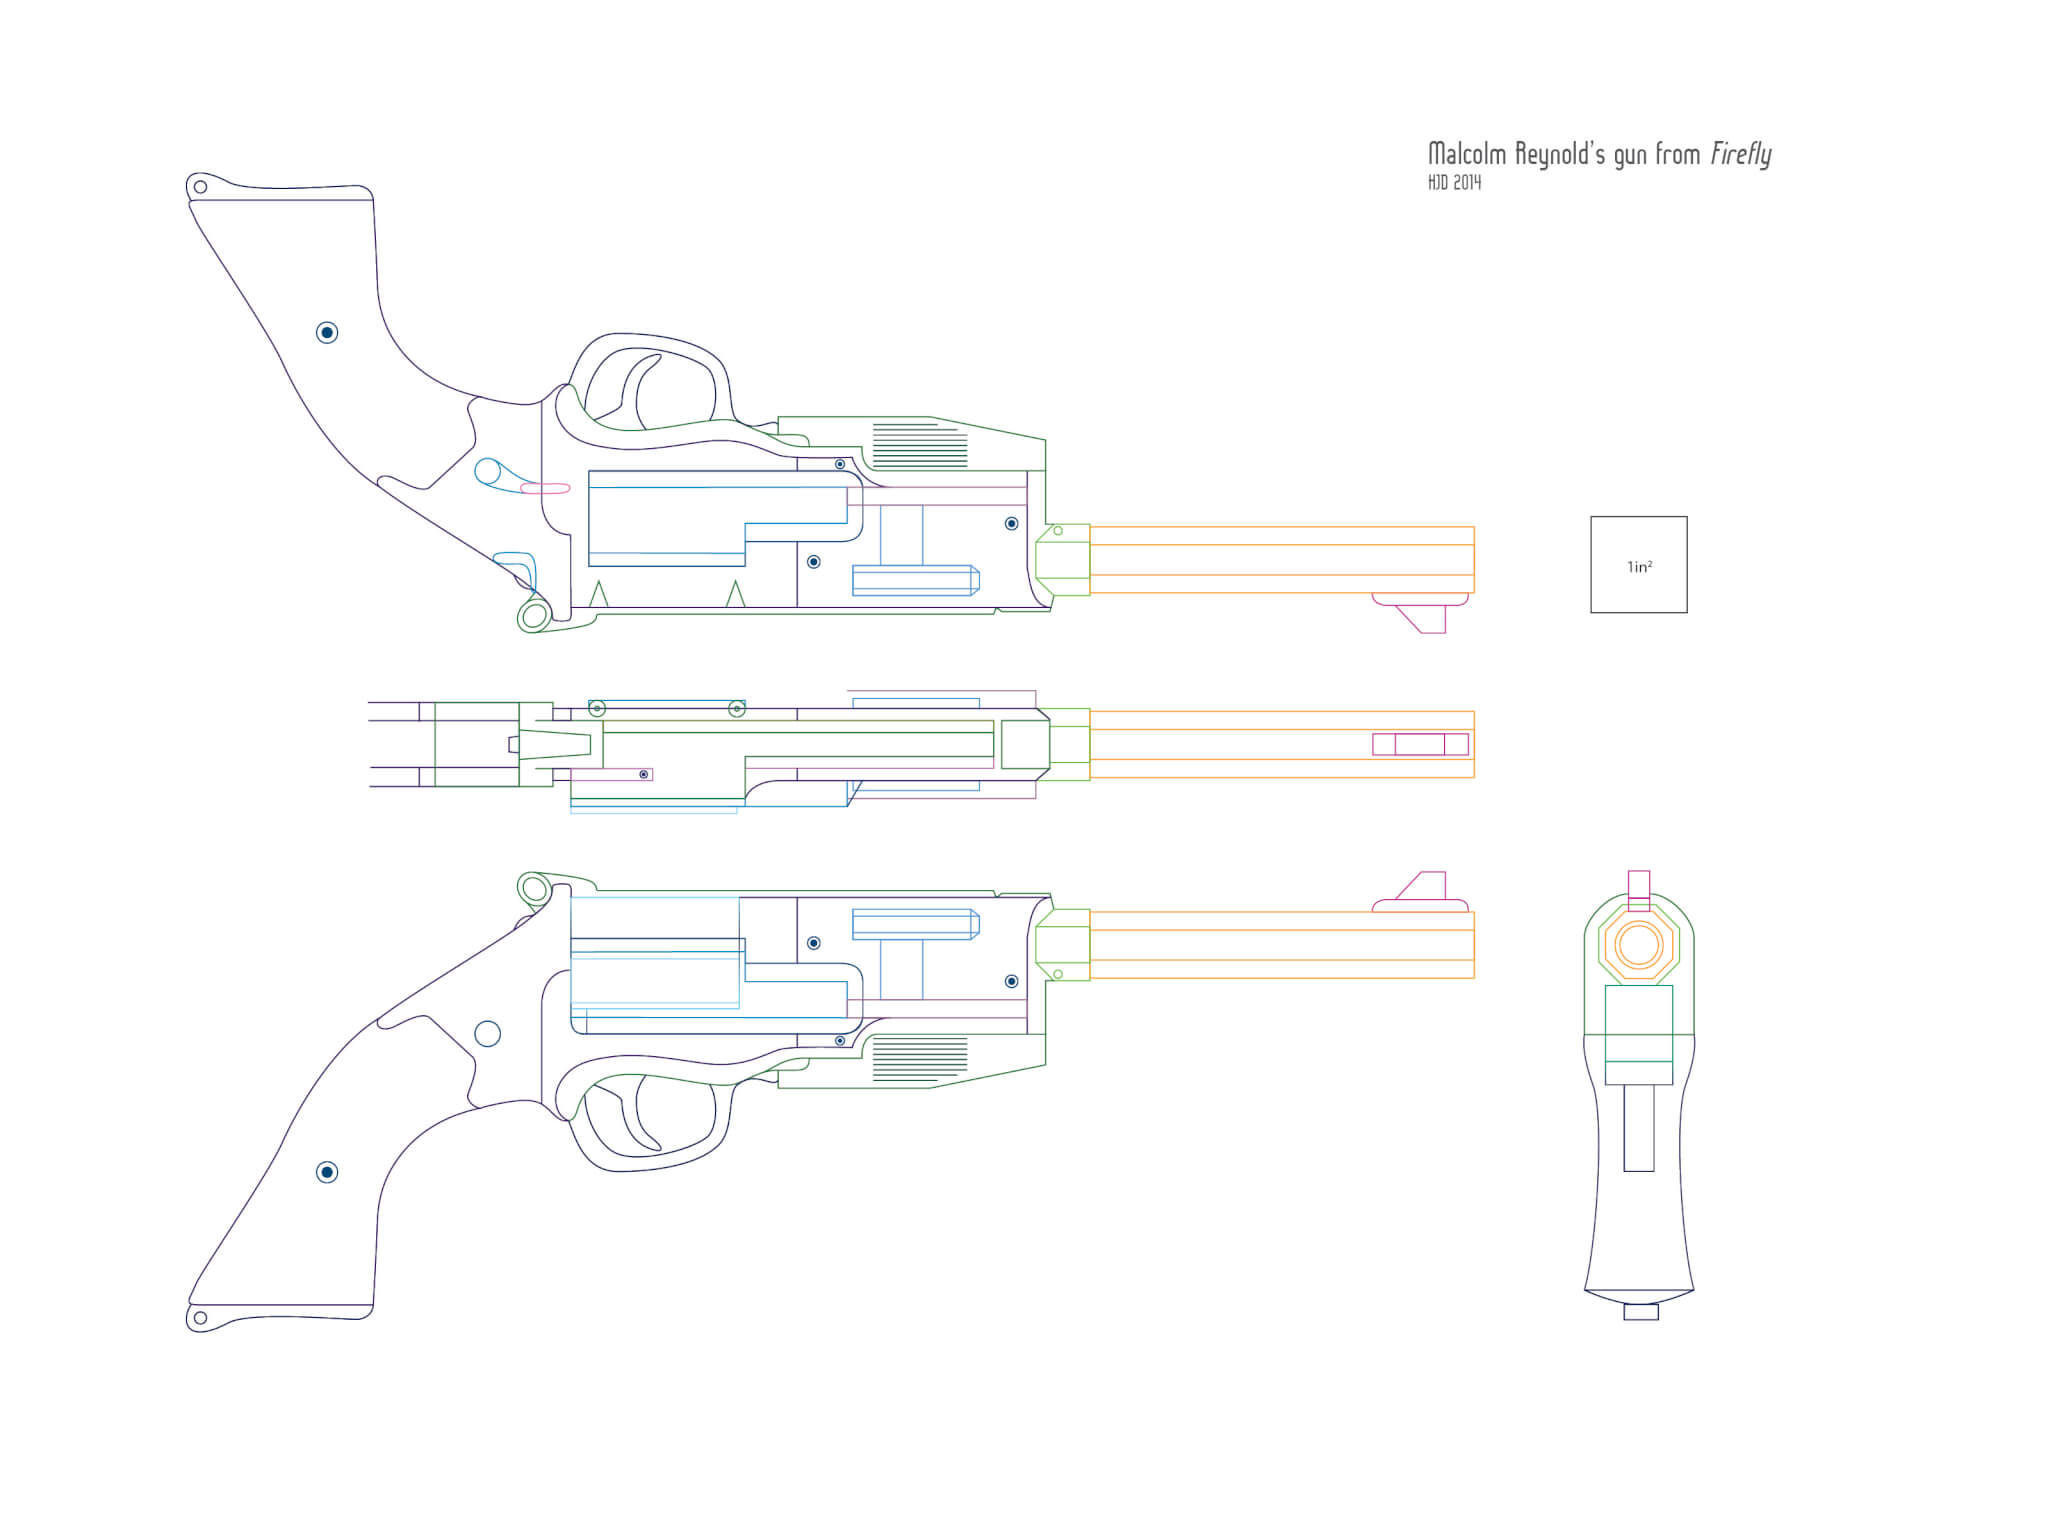 Blueprint For Mal S Gun